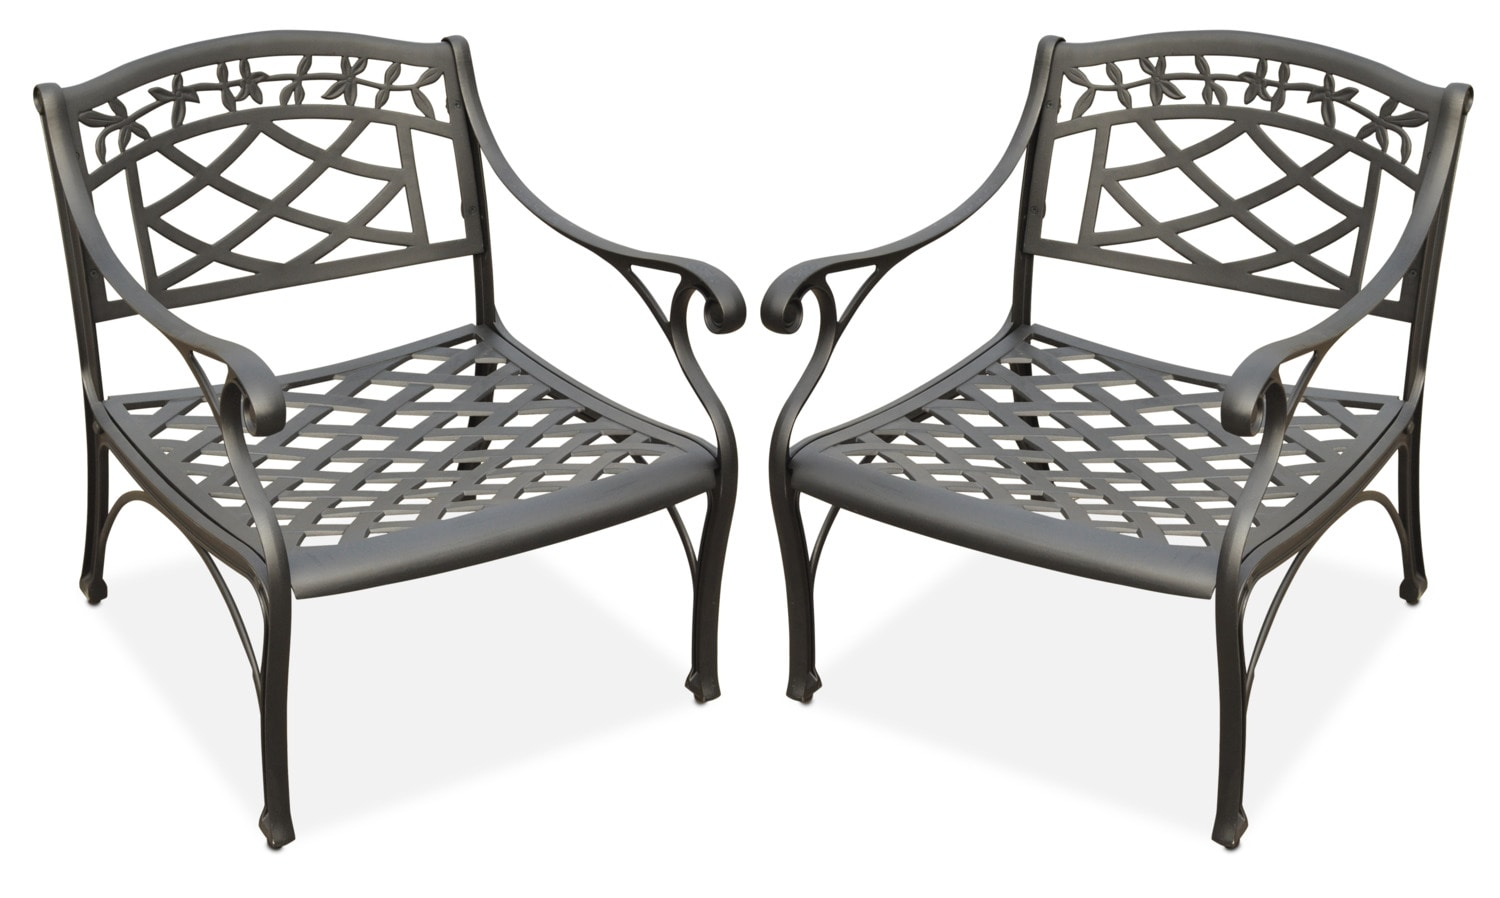 Outdoor Furniture - Hana Set of 2 Outdoor Chairs - Black